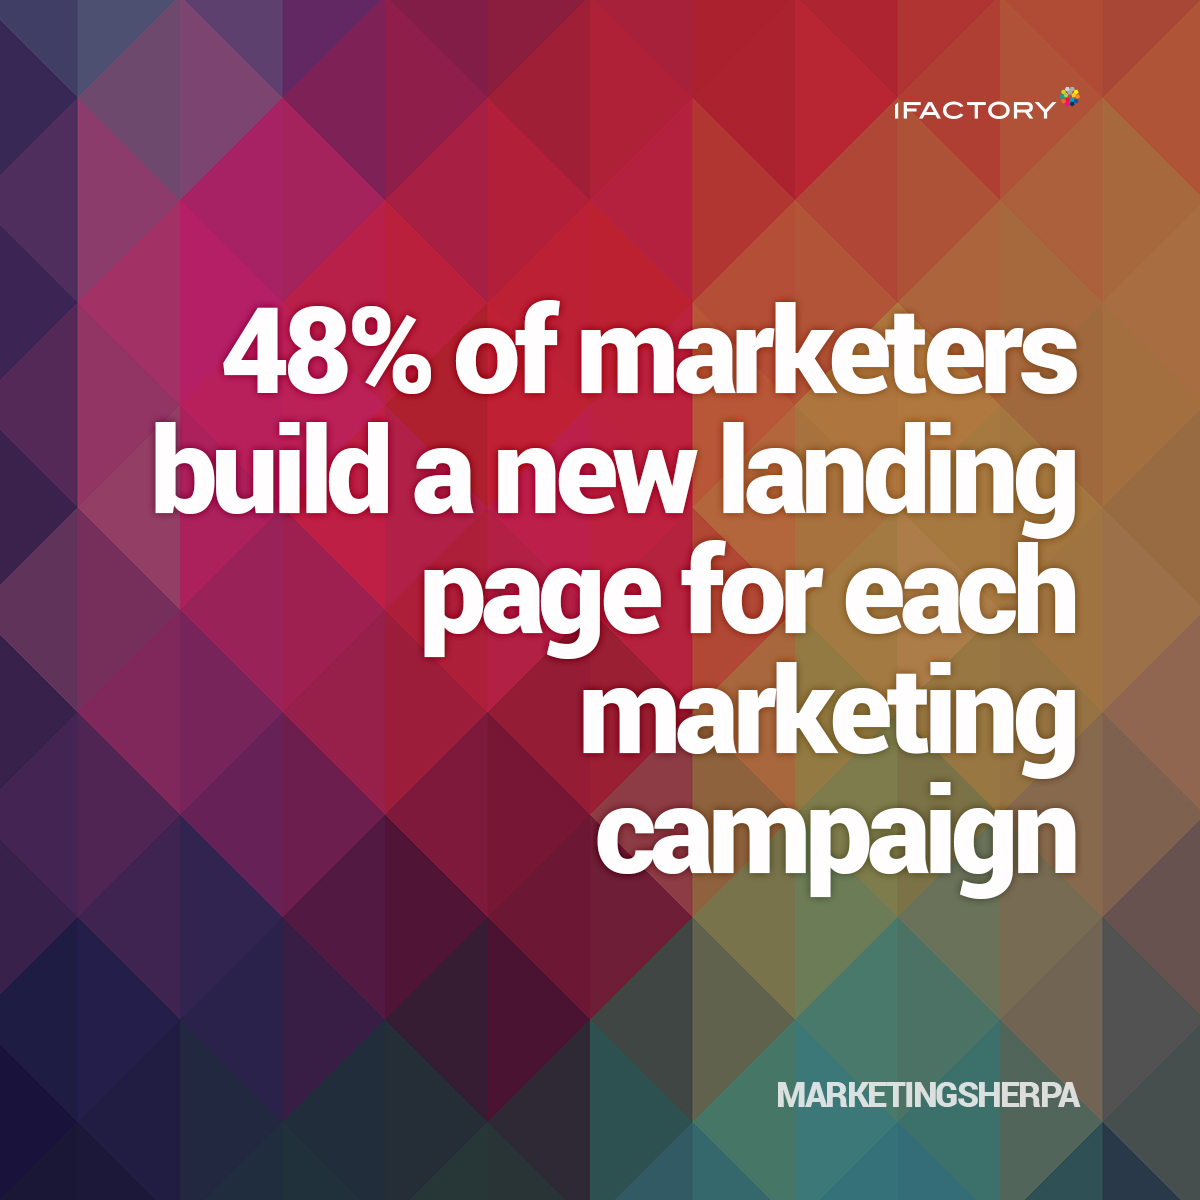 48% of marketers build a new landing page for each marketing campaign